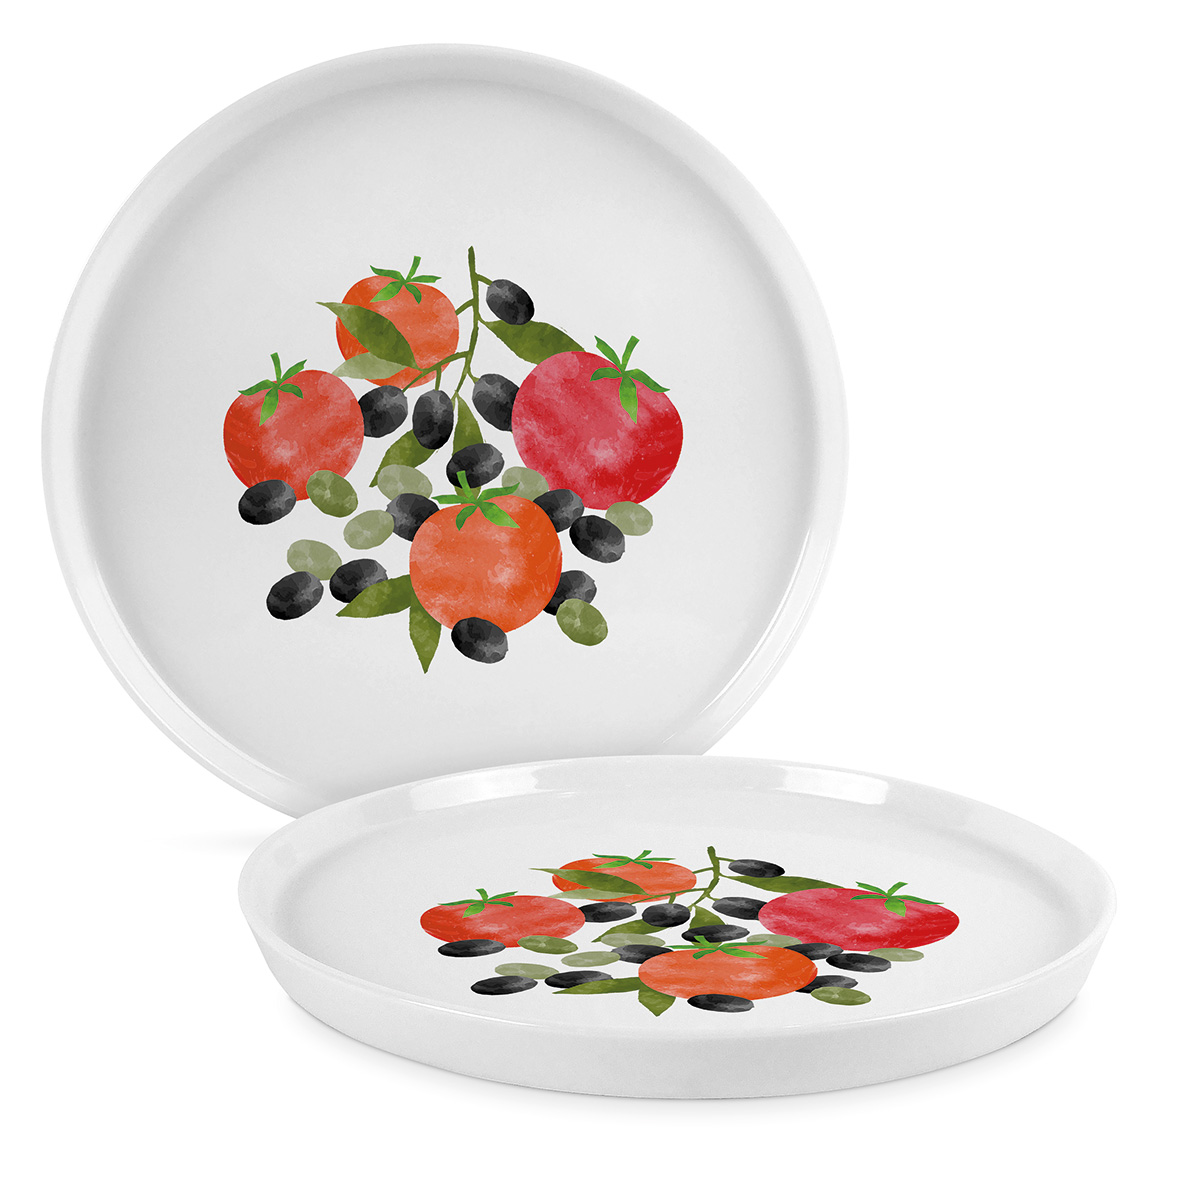 Tomatoes & Olives Trend Plate 27